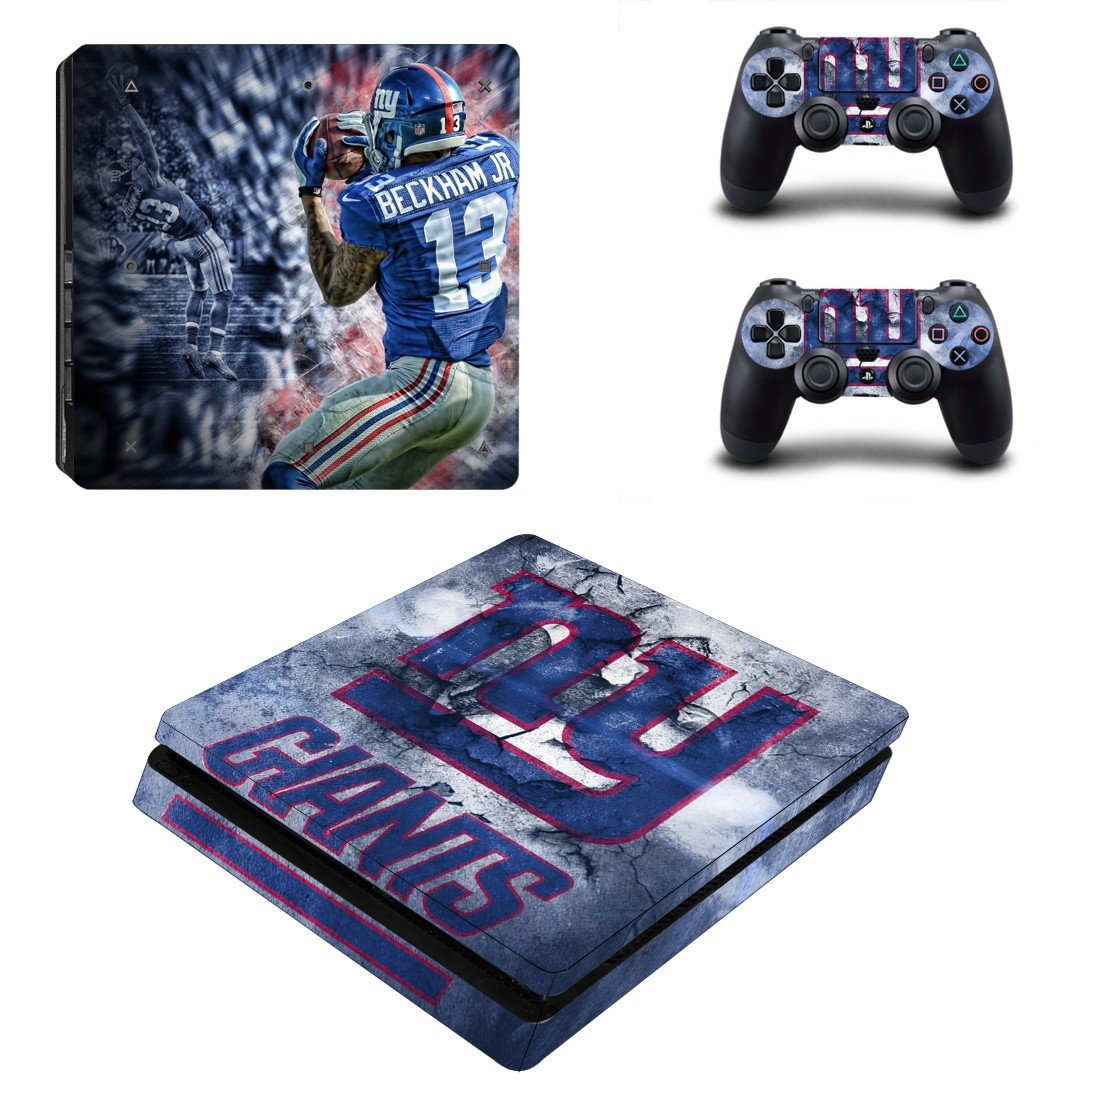 New york Giants Play Station 4 slim skin decal for console and 2 controllers